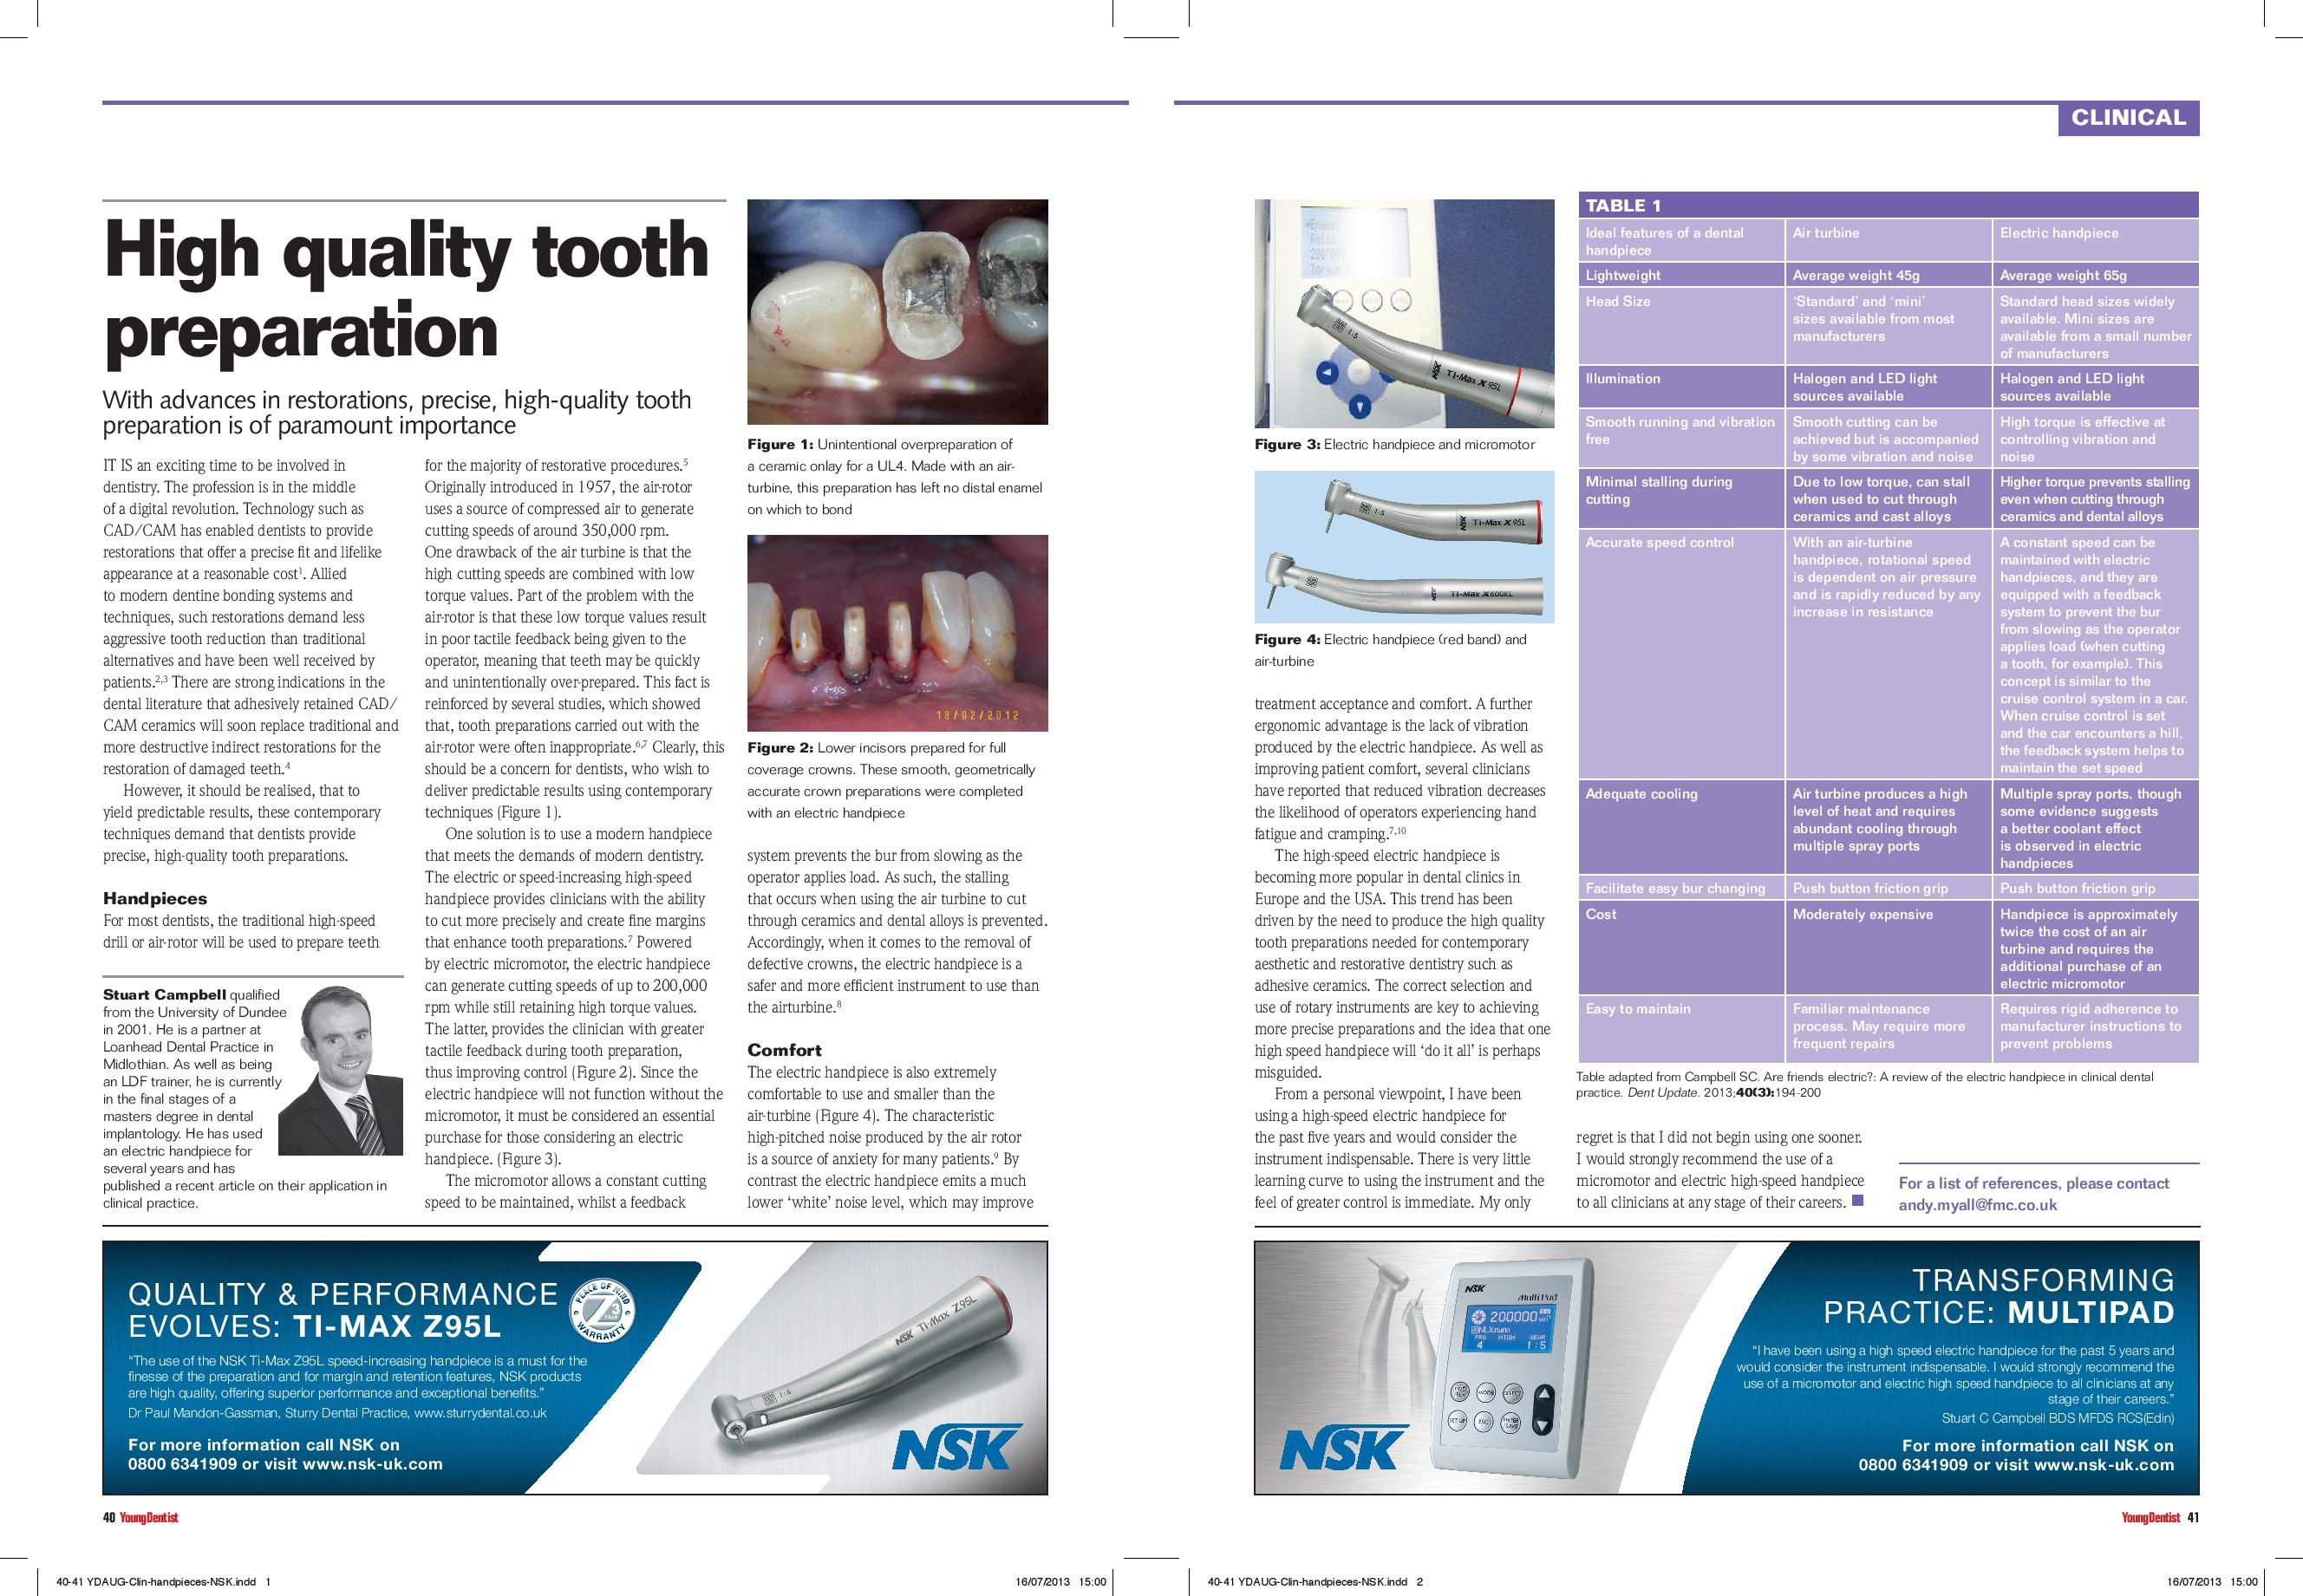 High quality tooth preparation, Young Dentist, September